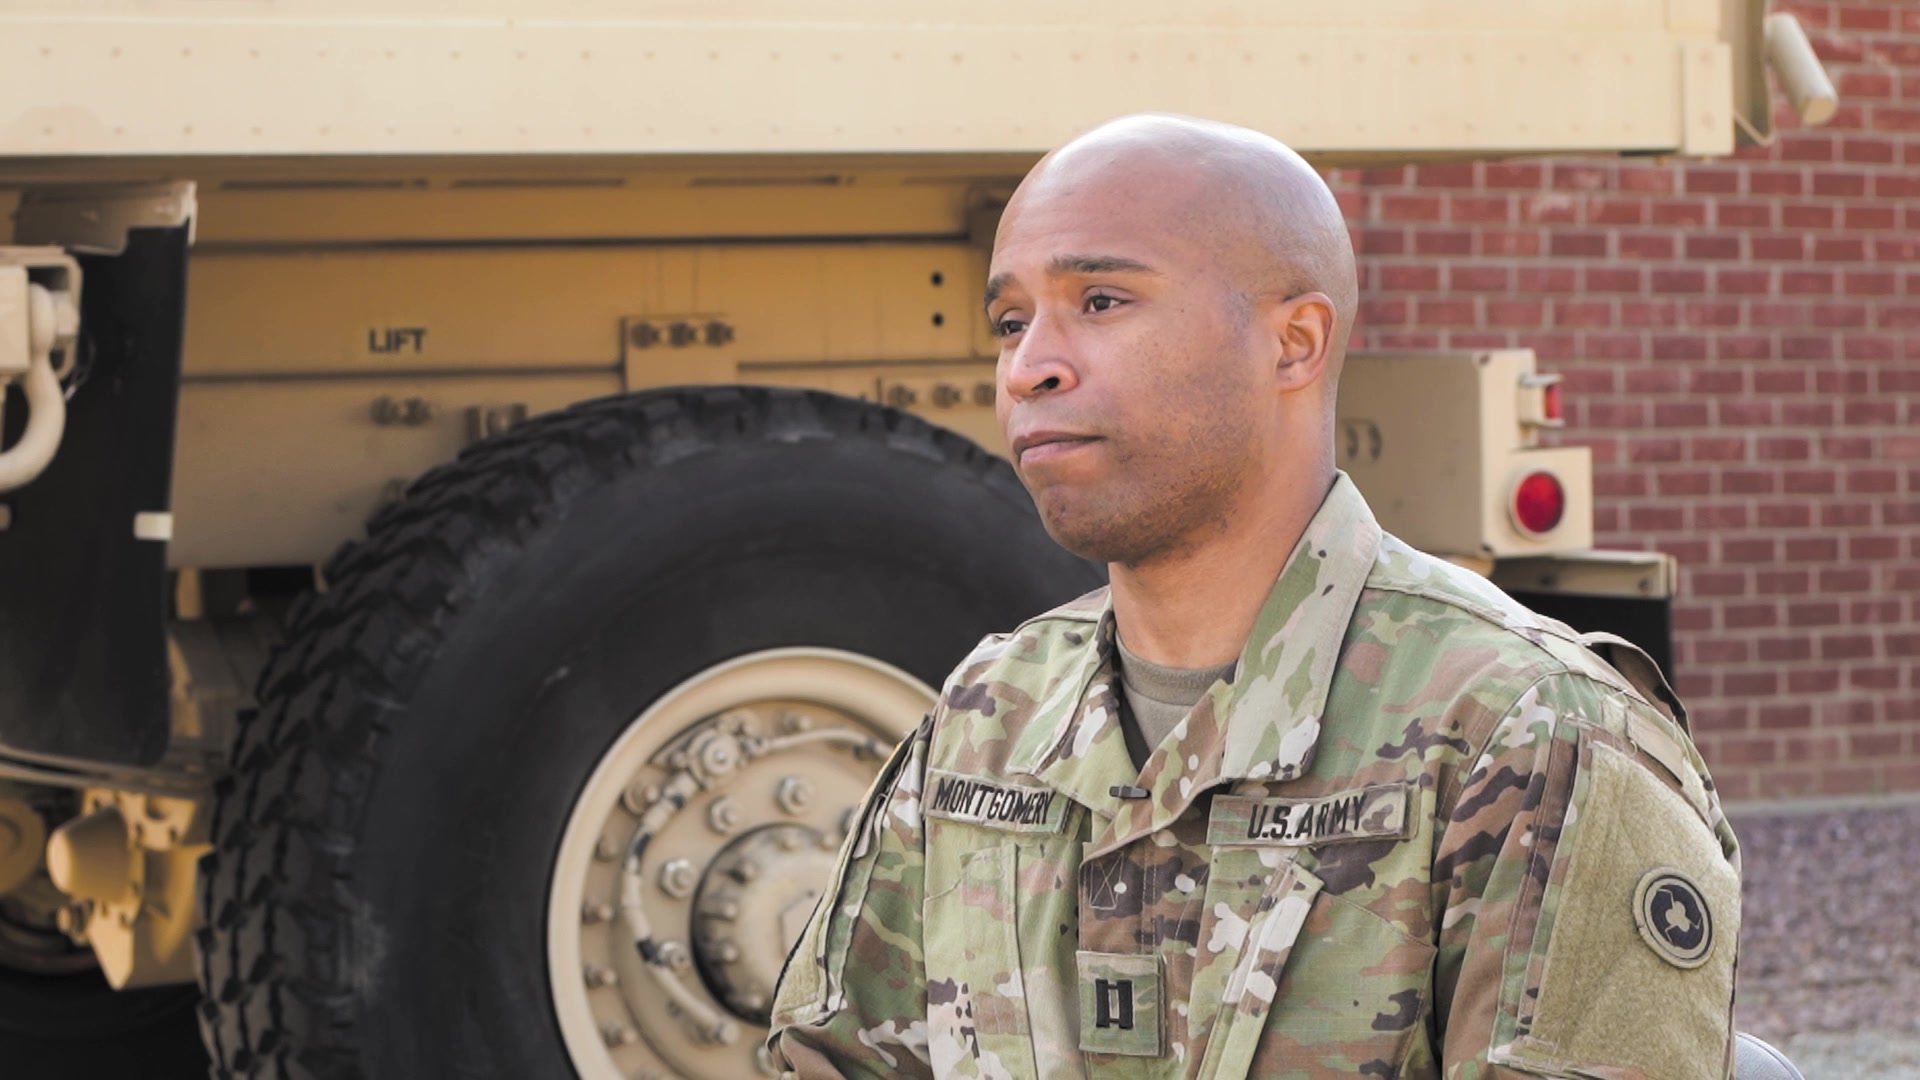 The Army Reserve is a people-first organization, and as an Army Reserve command, we will continue to tackle the issues of diversity and equality. To do this, it has to start with a conversation.